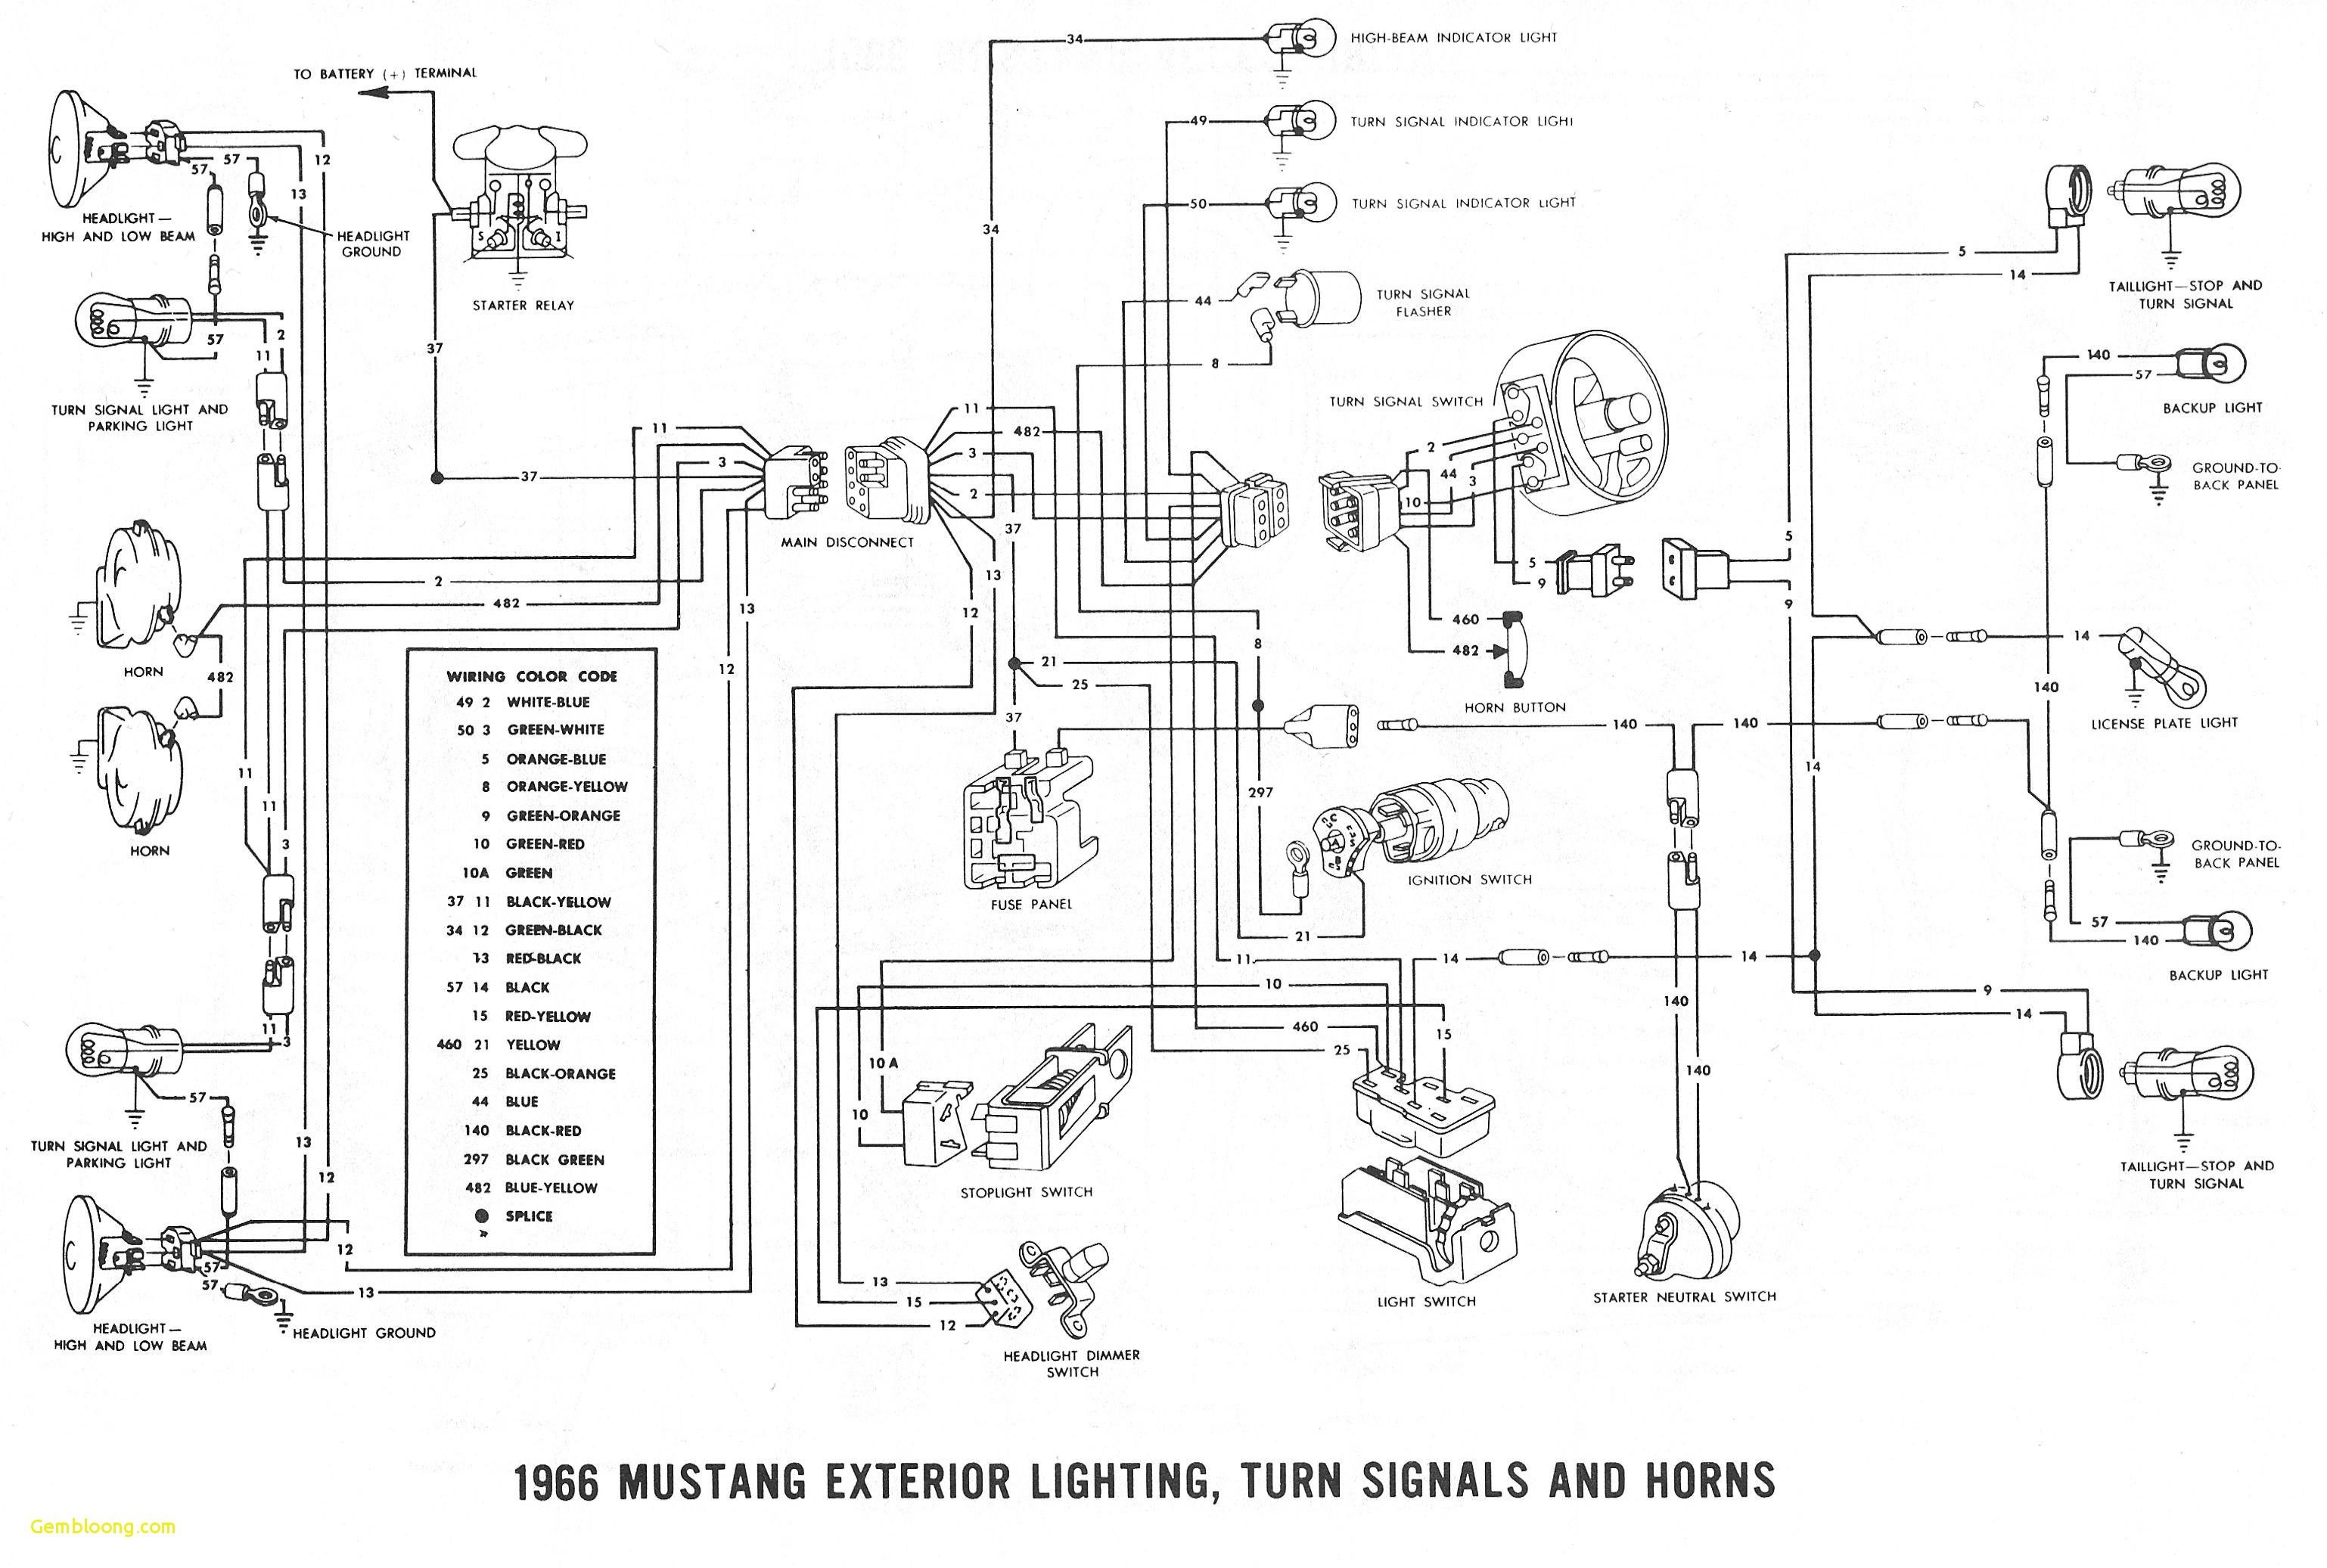 bmw ignition diagram | horizon-expectat my wiring diagram -  horizon-expectat.kc-sump.eu  kc-sump.eu